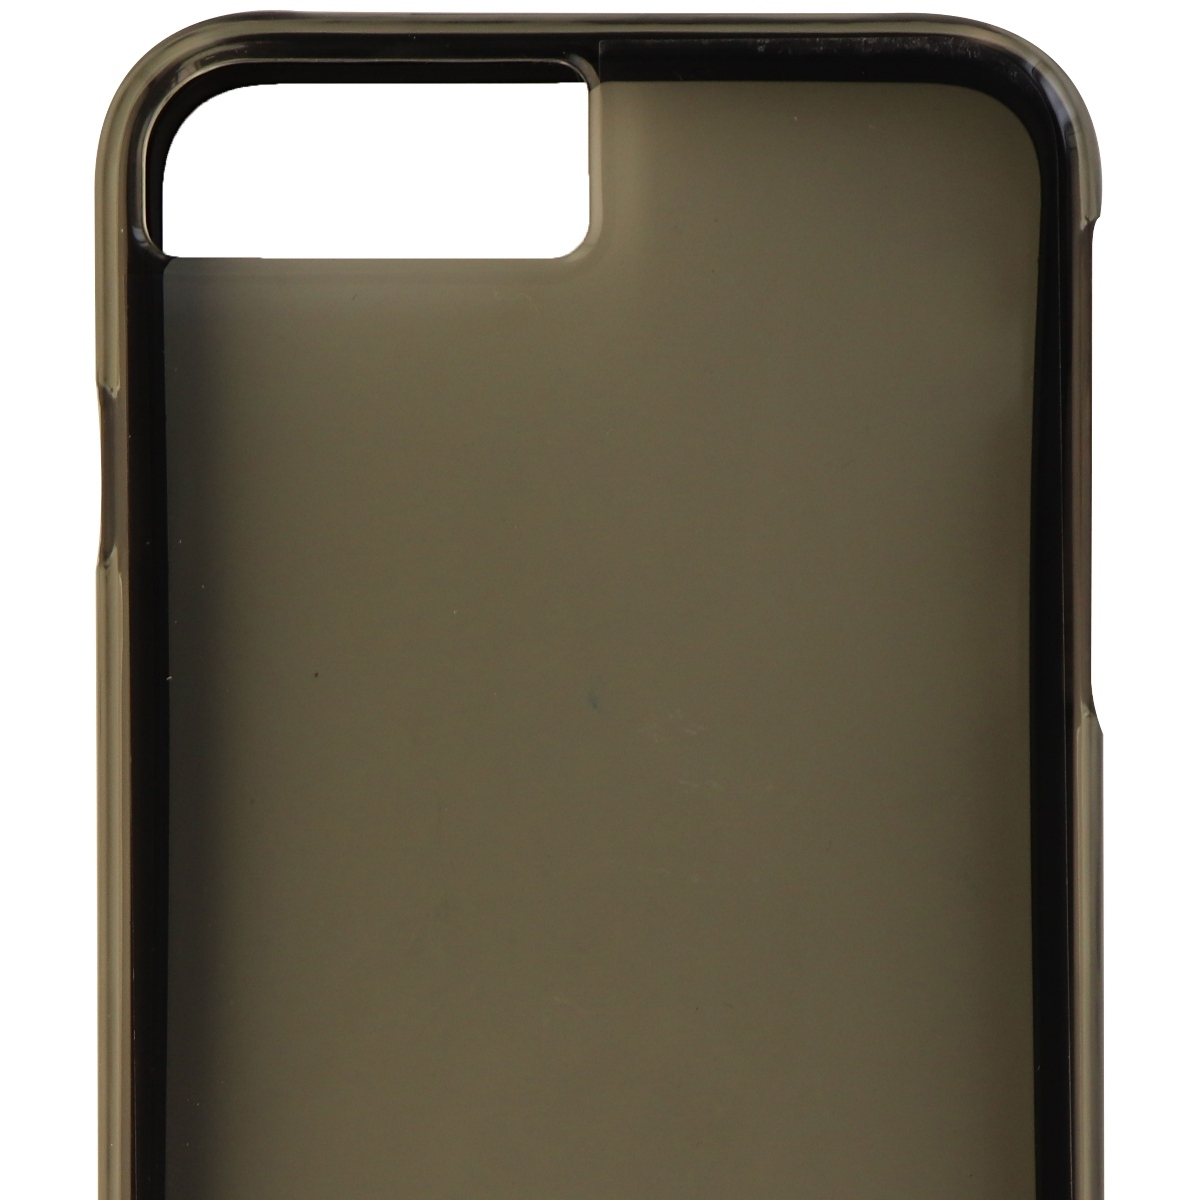 Case-Mate Naked Tough Series Case for iPhone 8 Plus 7 Plus Transparent Black